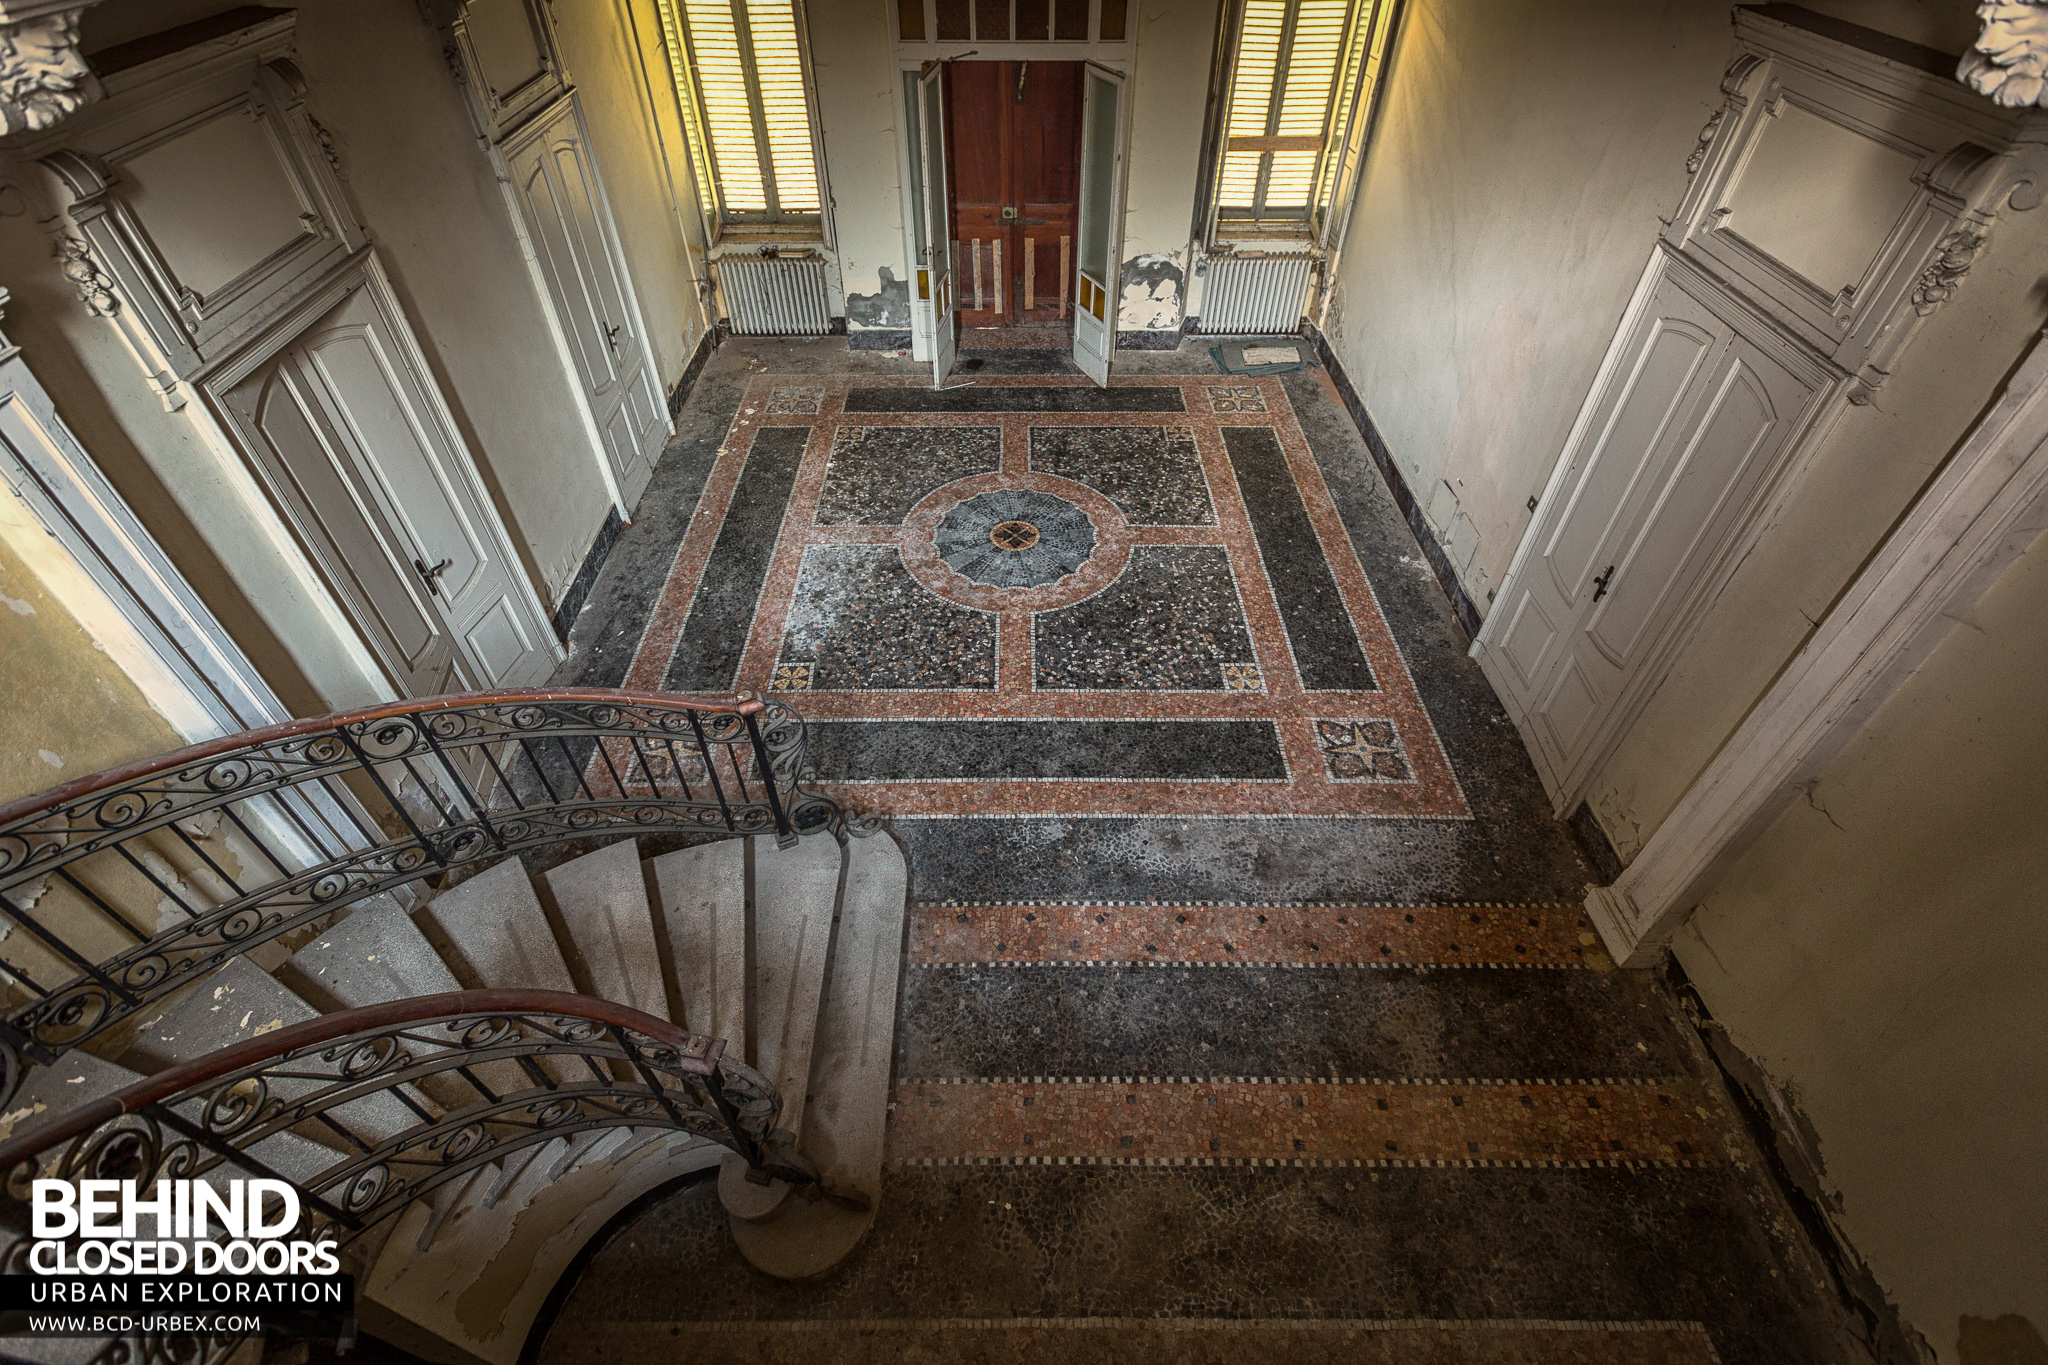 Hall Floor Tiles >> Villa Margherita, Abandoned House, Italy » Urbex | Behind Closed Doors Urban Exploring Abandoned ...